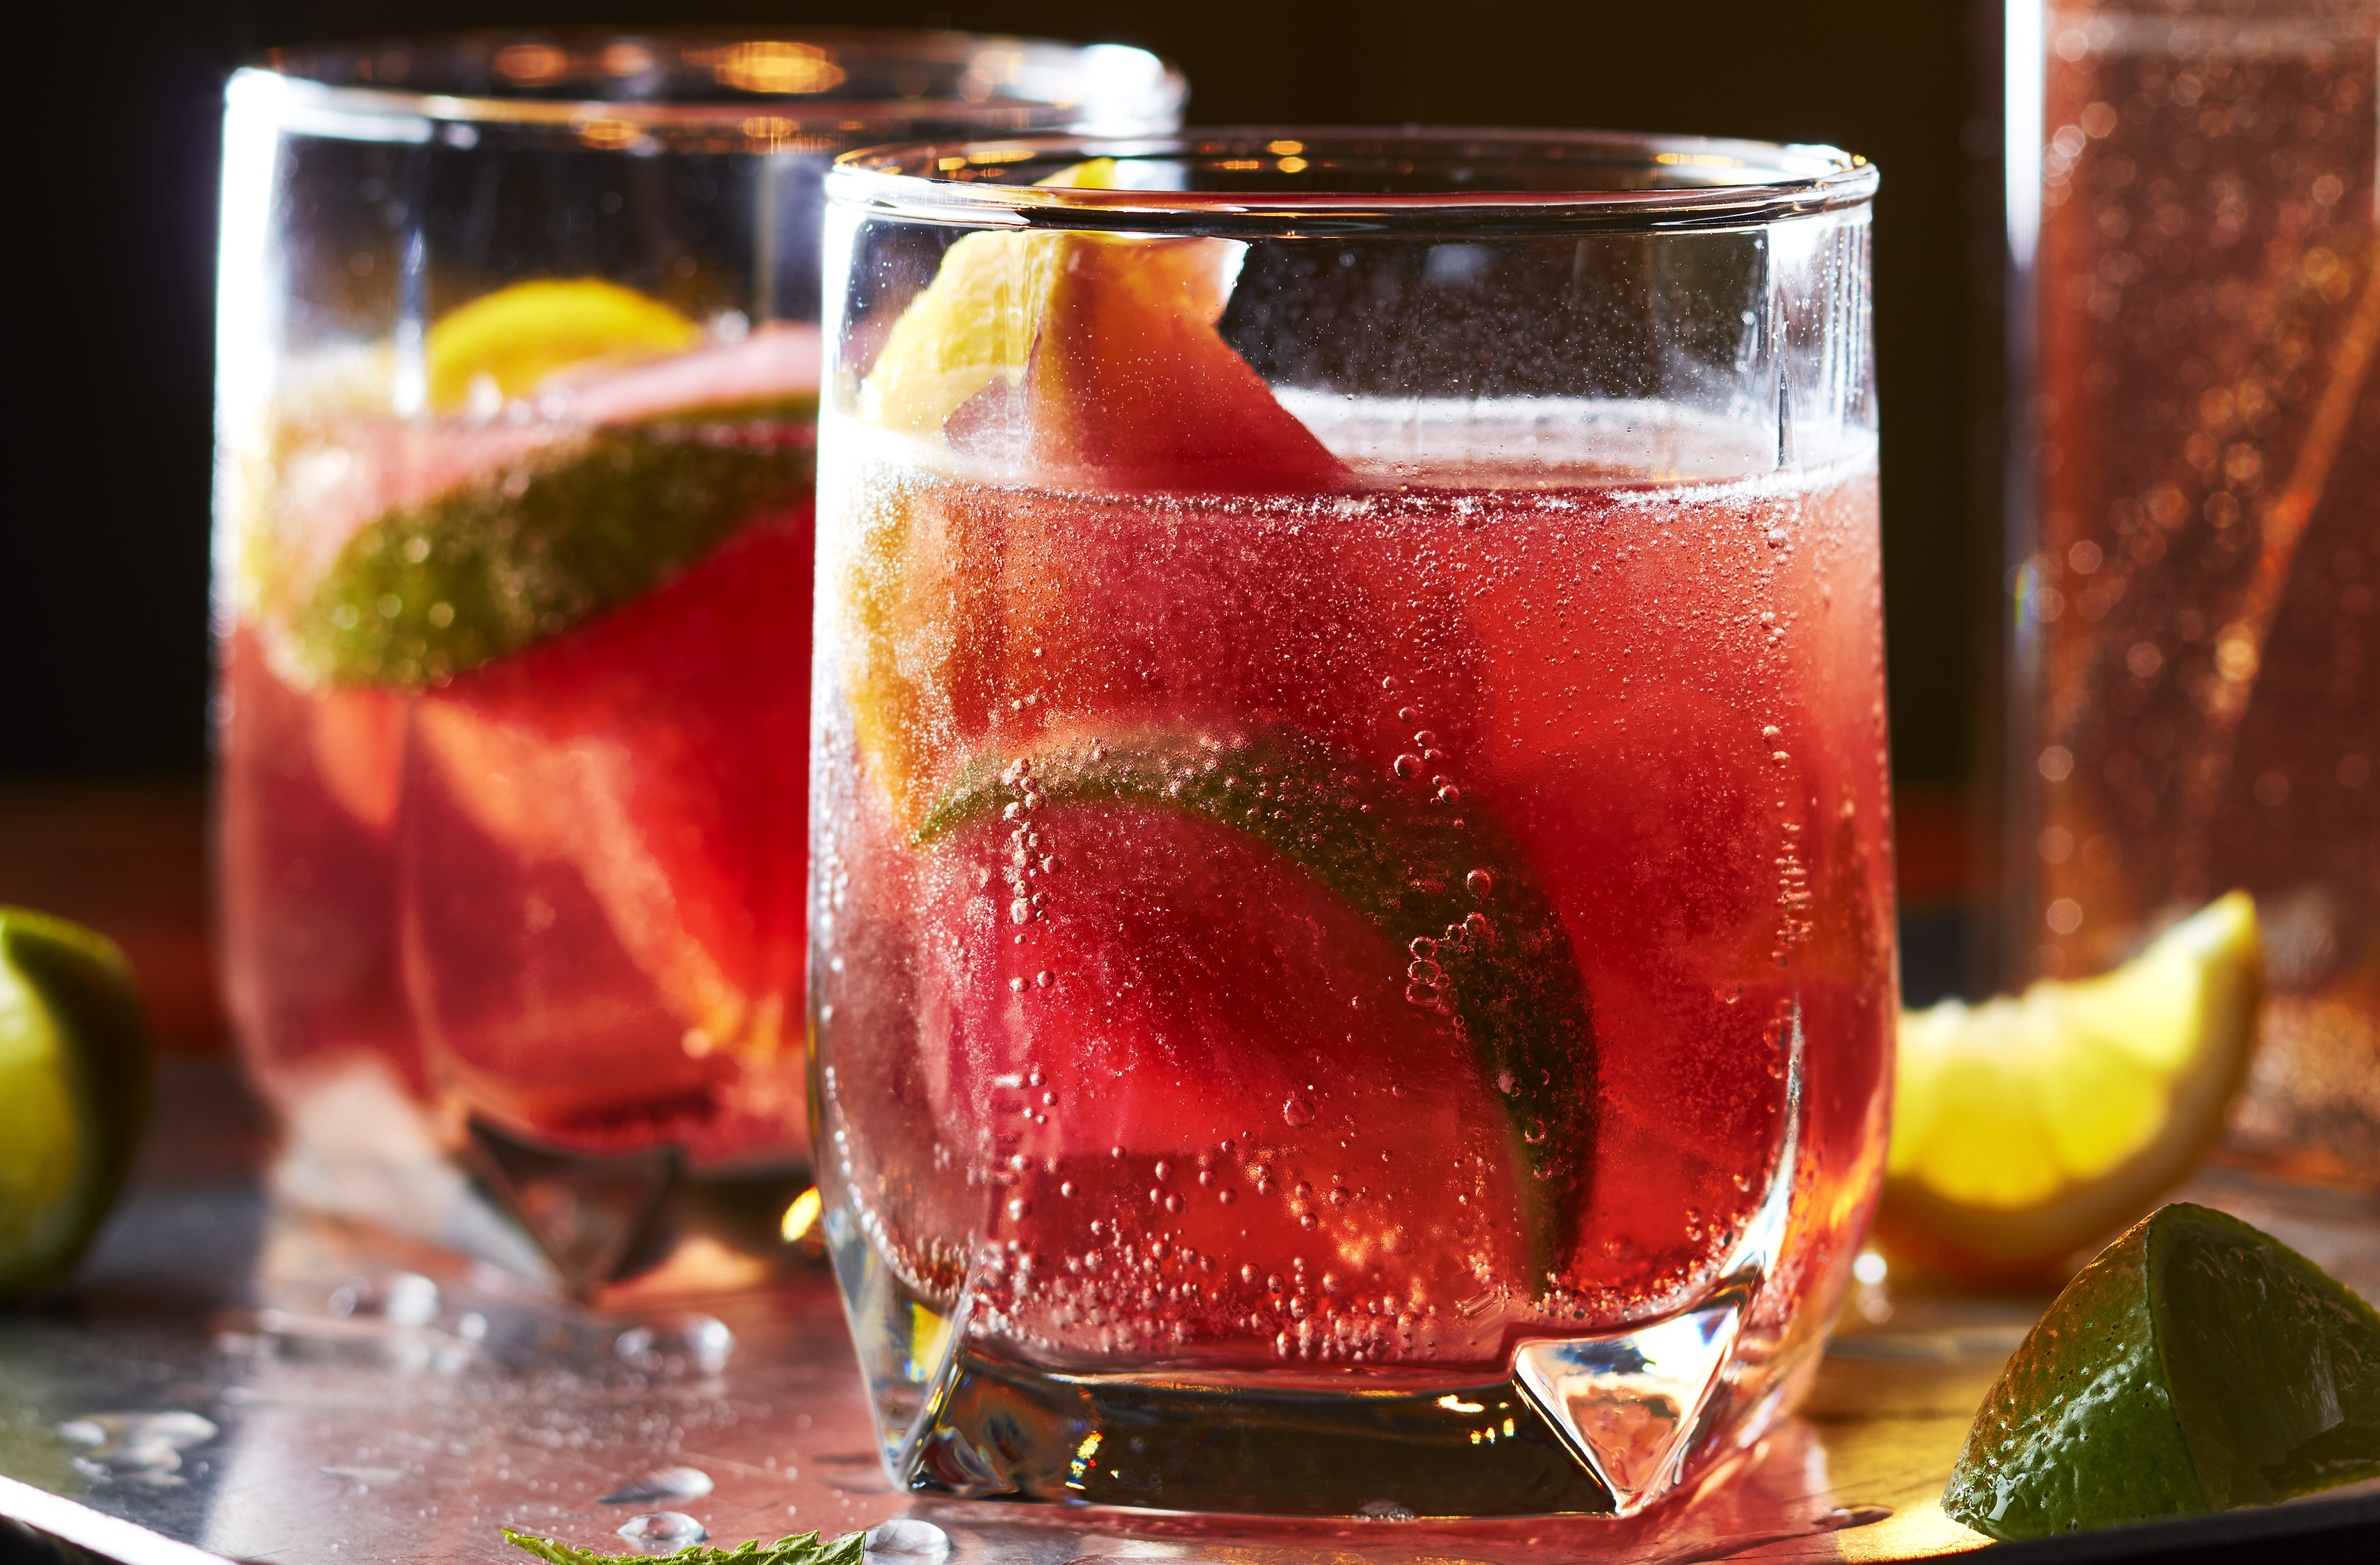 Two glasses of Ginger Hibiscus Sparkling Punch with slices of lime inside